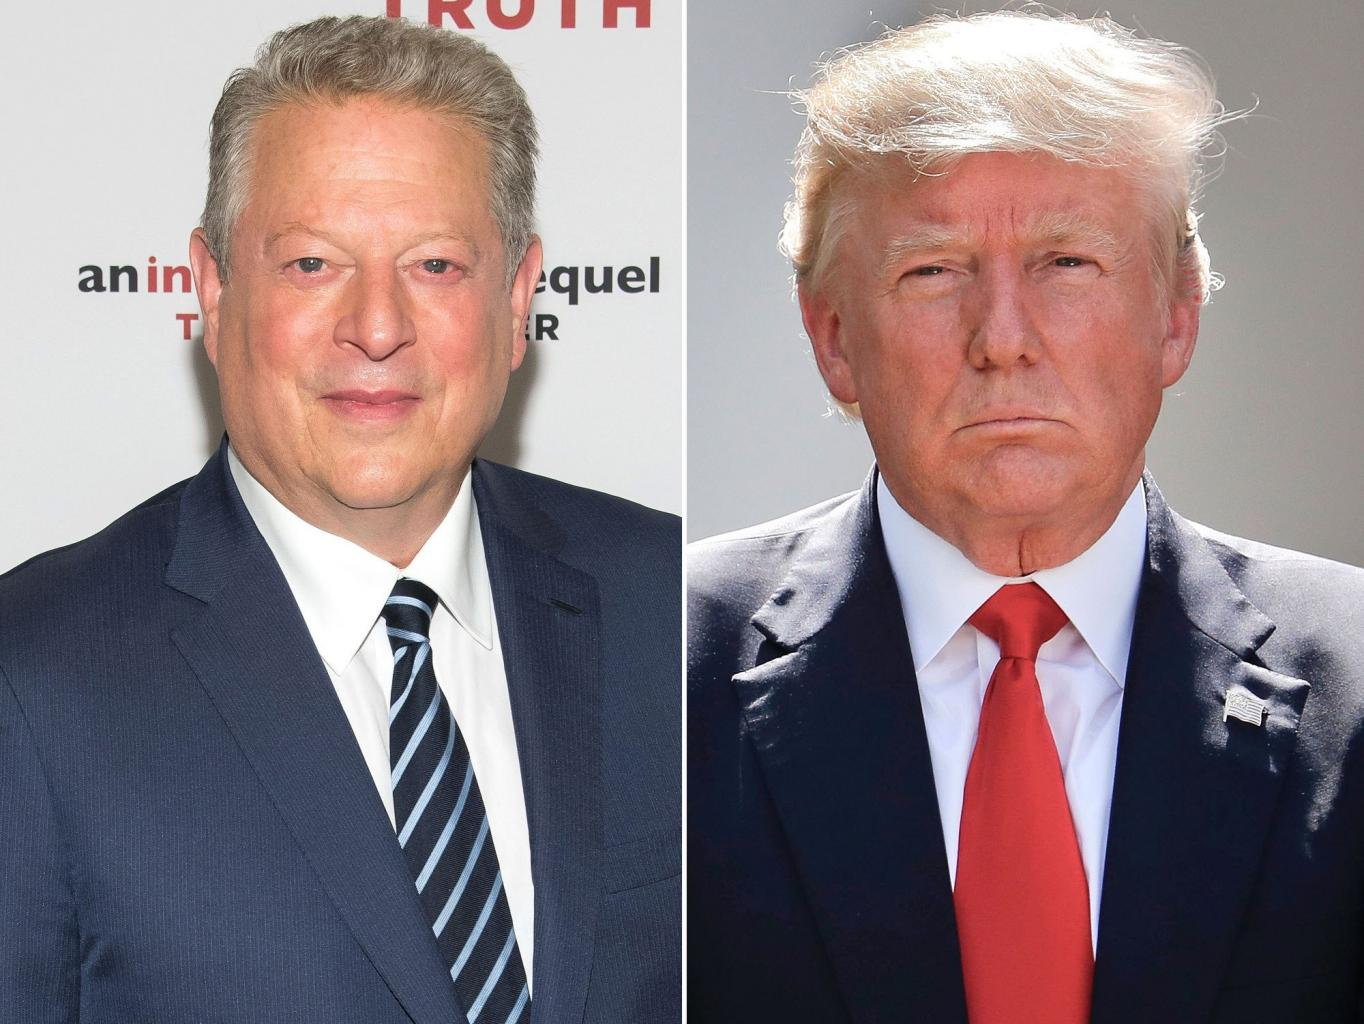 Al Gore Blasts Trump for        Normalizing      '  Climate Change Denial in New Book: The        Future of Humanity      '  Is at    Risk